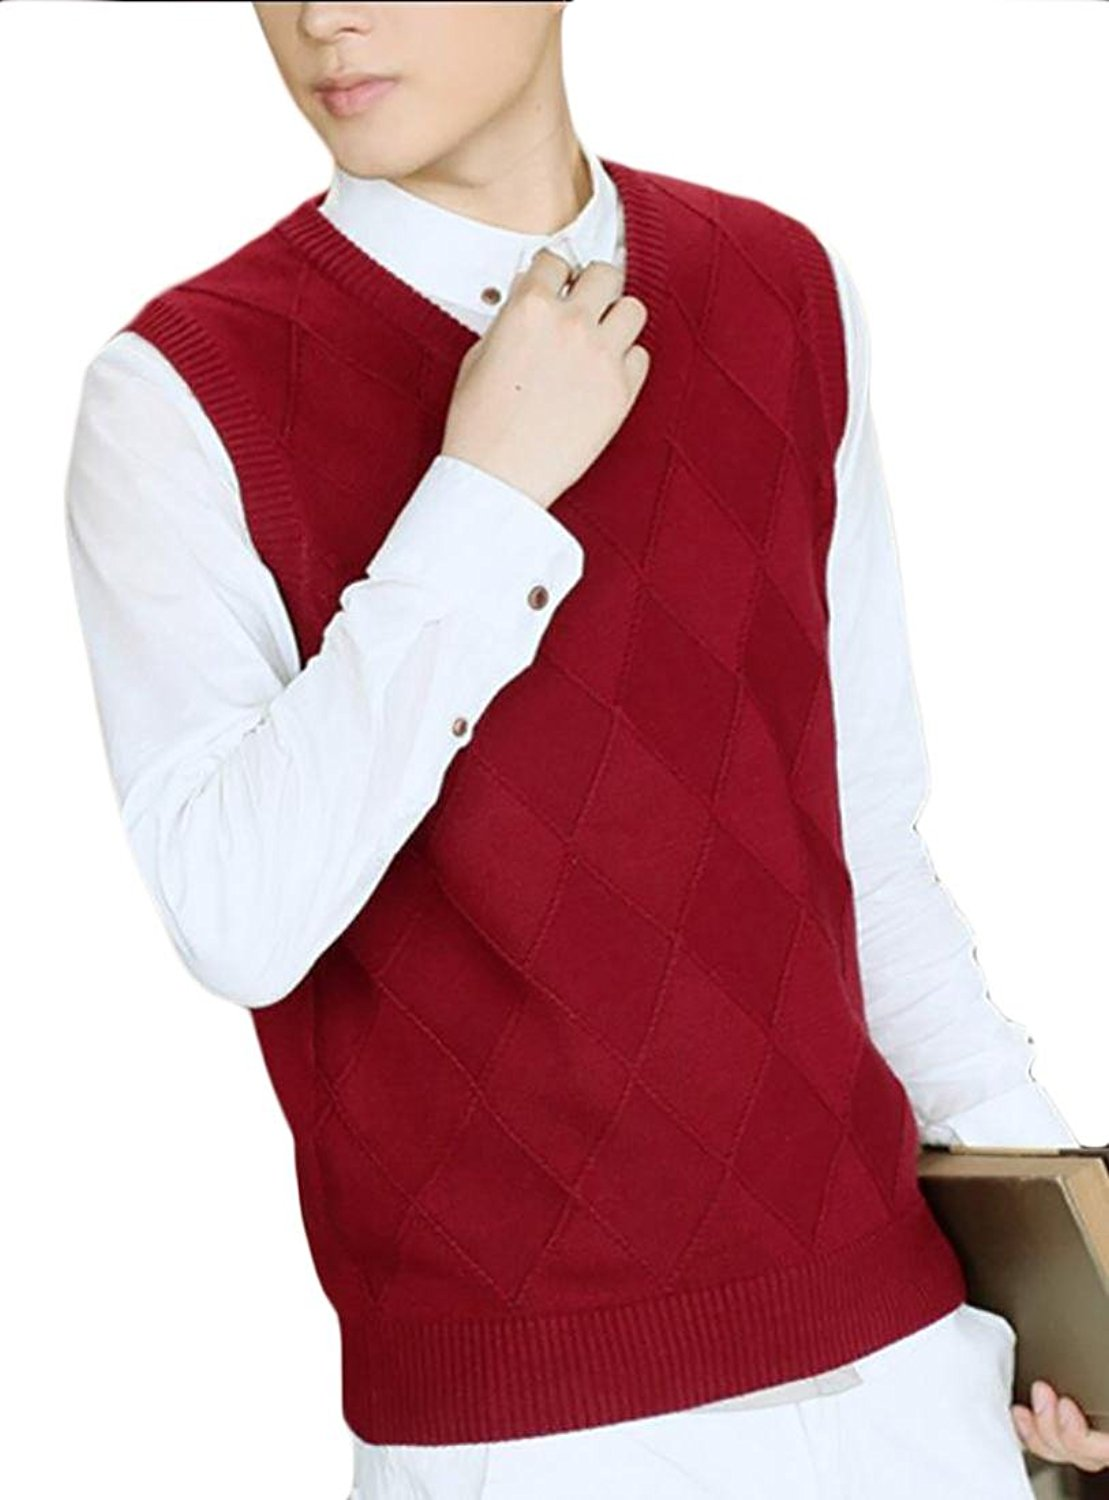 a6bf70cf0 Get Quotations · Jaycargogo Mens Fashion Pure Color V Neck Sleeveless Sweater  Vest